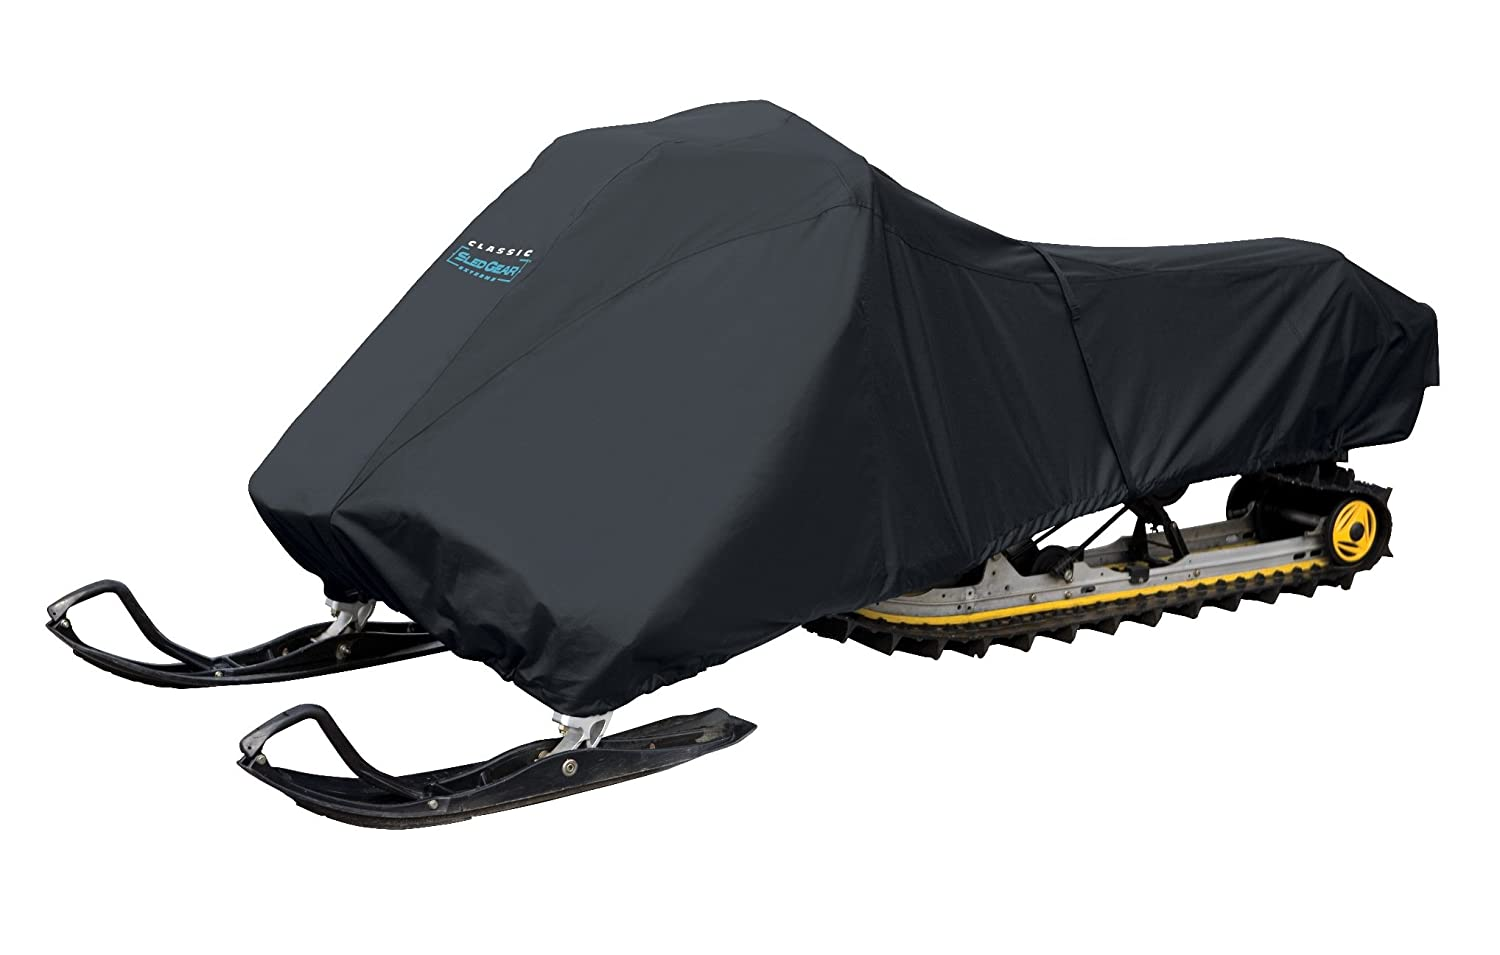 Classic Accessories 71547 SledGear Snowmobile Storage Cover X-Large